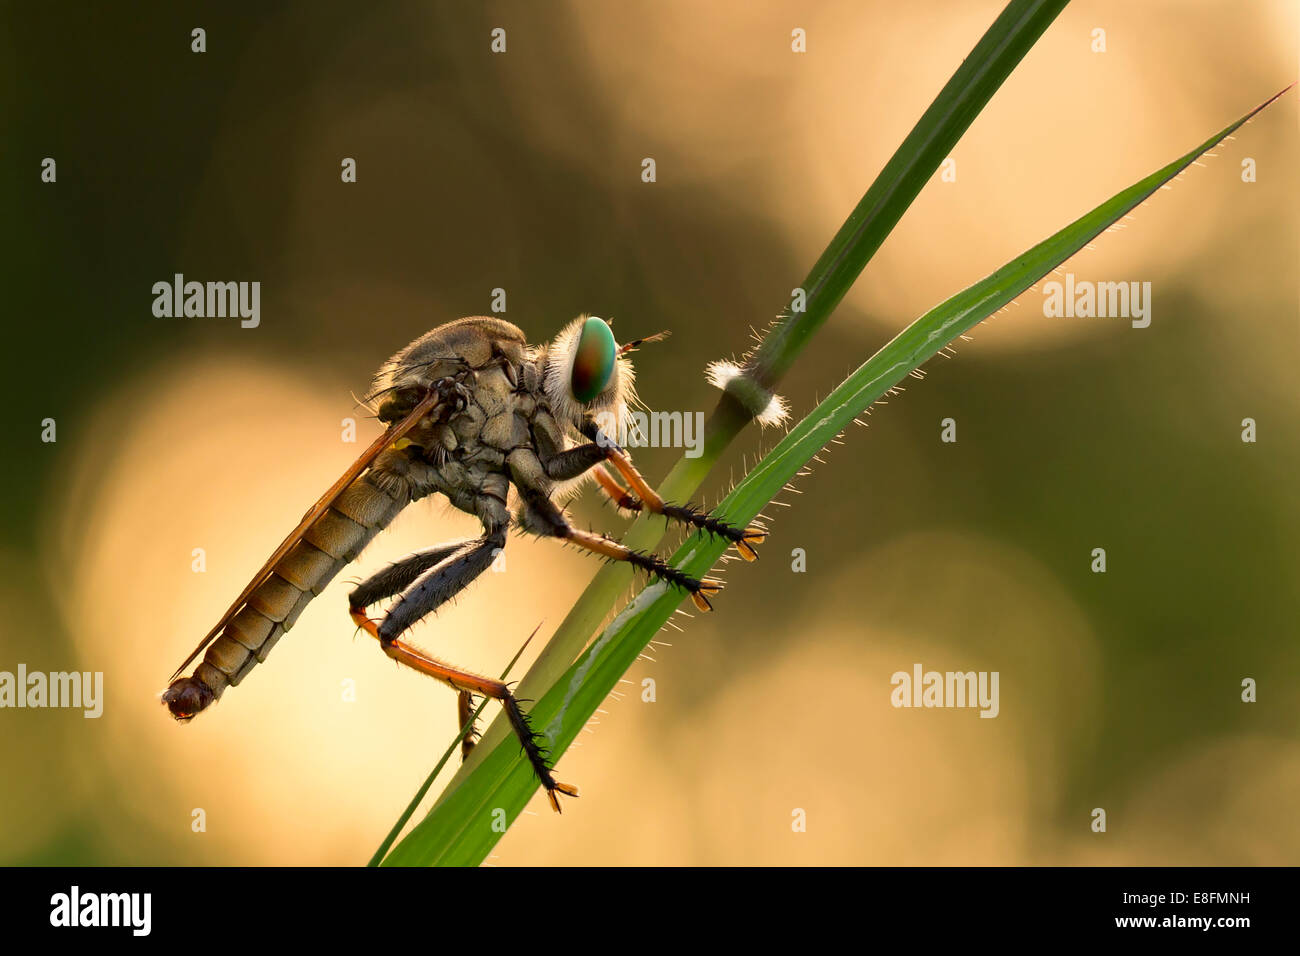 Indonesia, West Java, Bekasi, Close up of rubber fly Stock Photo ...